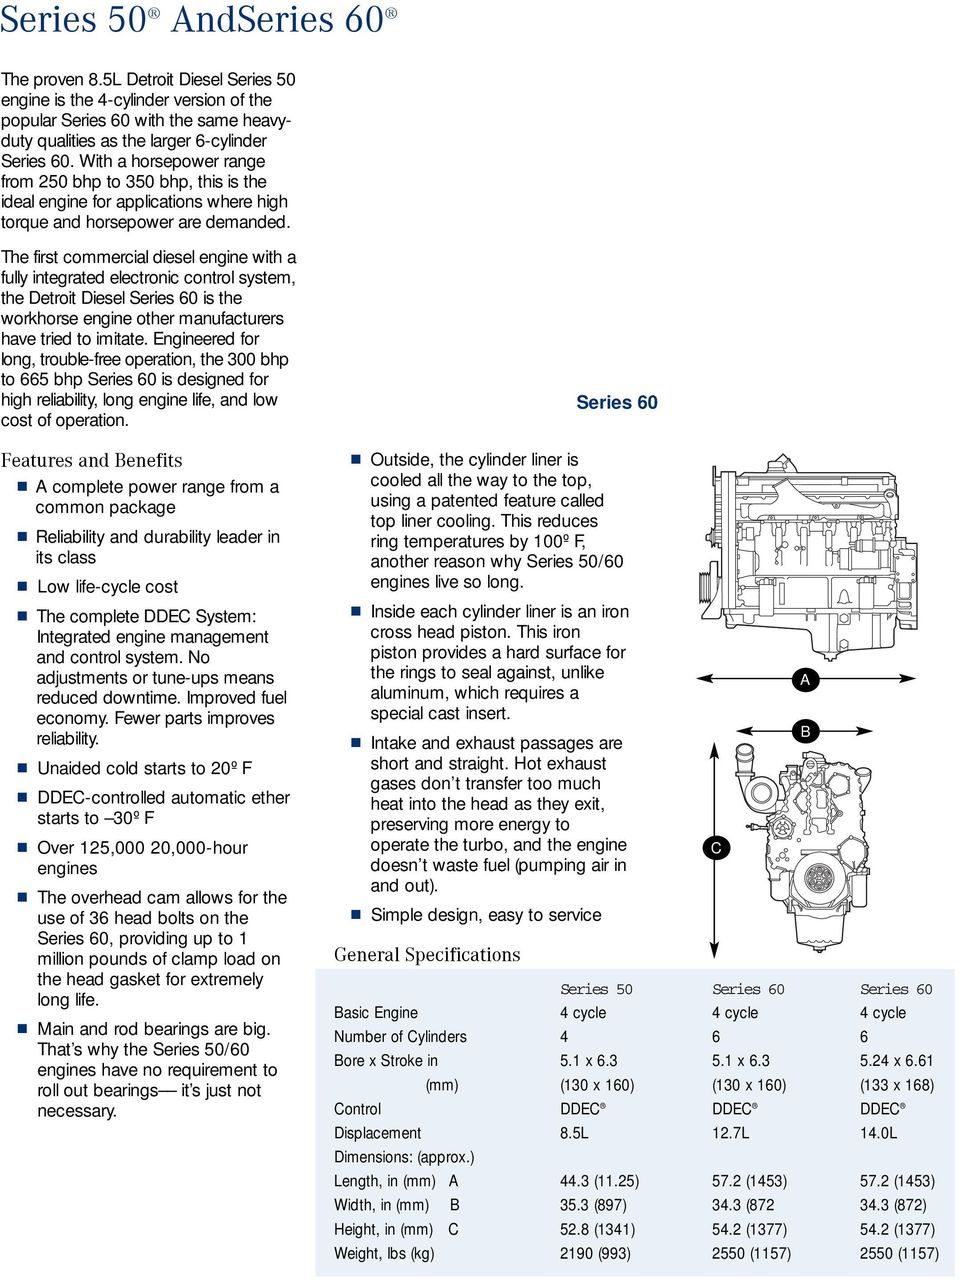 Diesel Engine Series 50 and 60 for Petroleum Applications - PDF